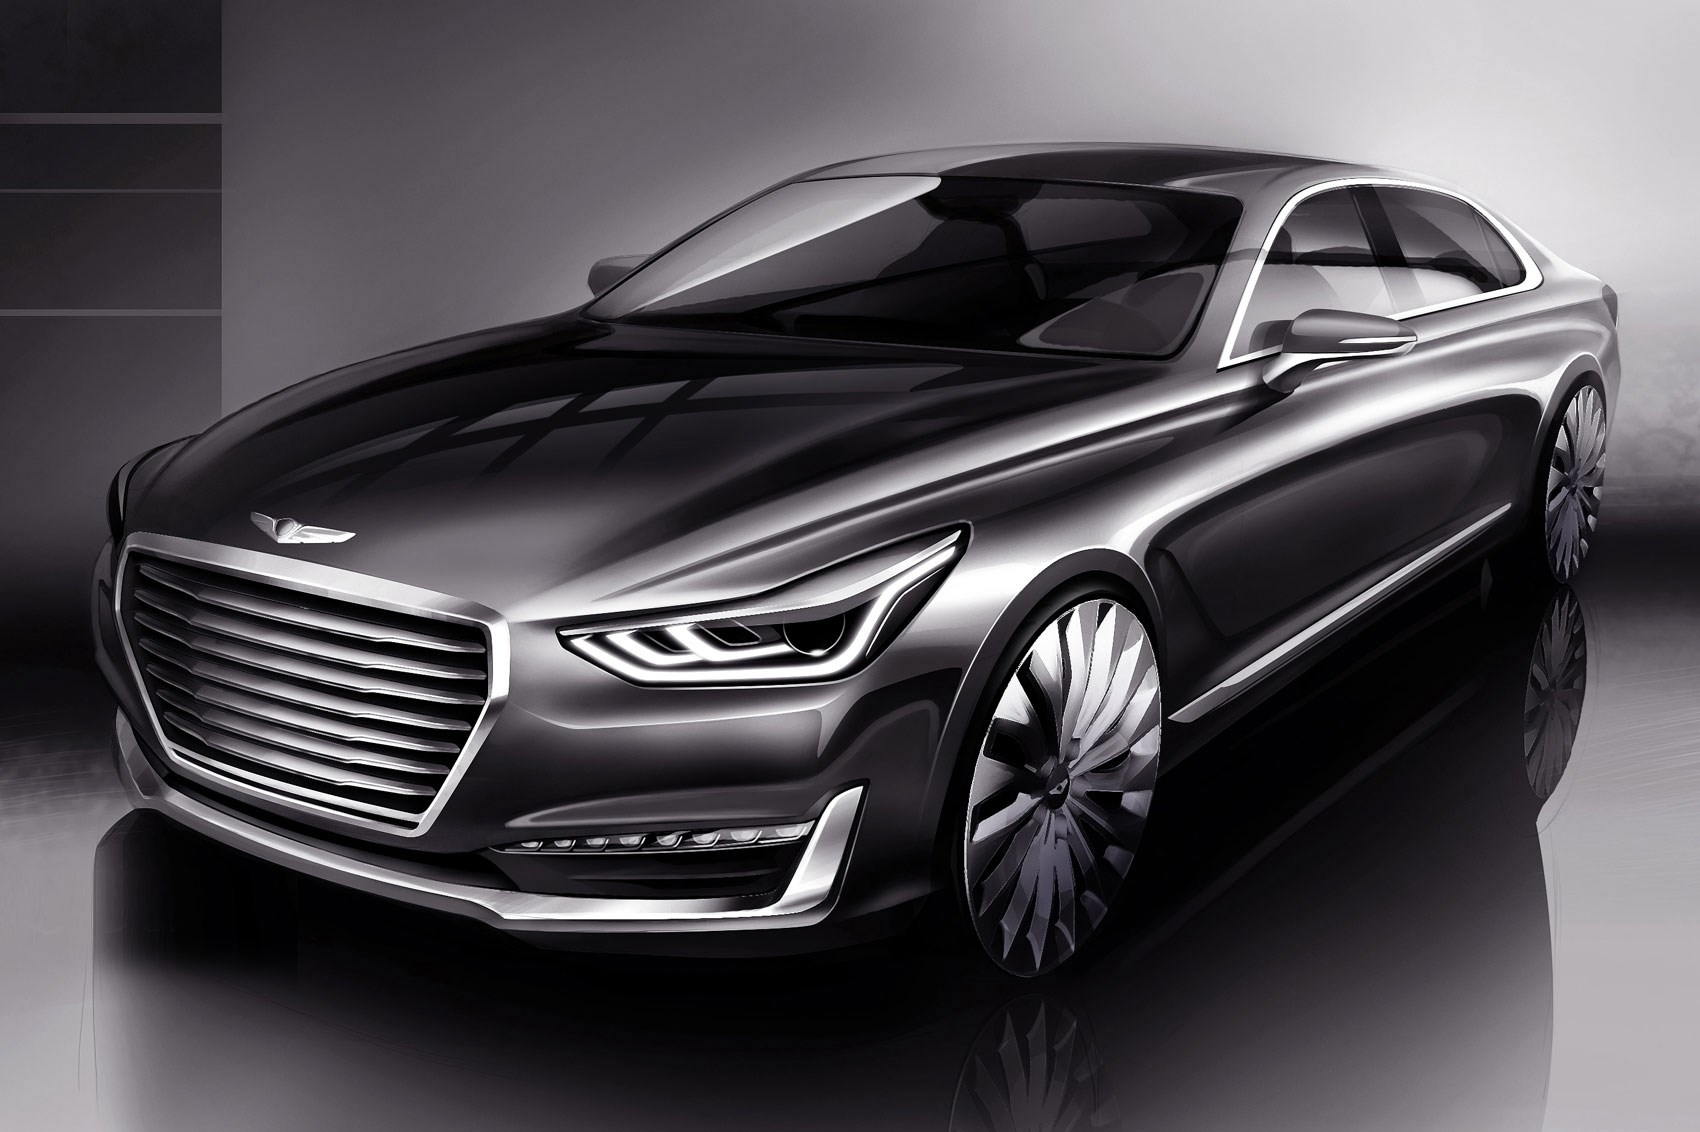 genesis autocar new specs car cars hyundai and pictures news